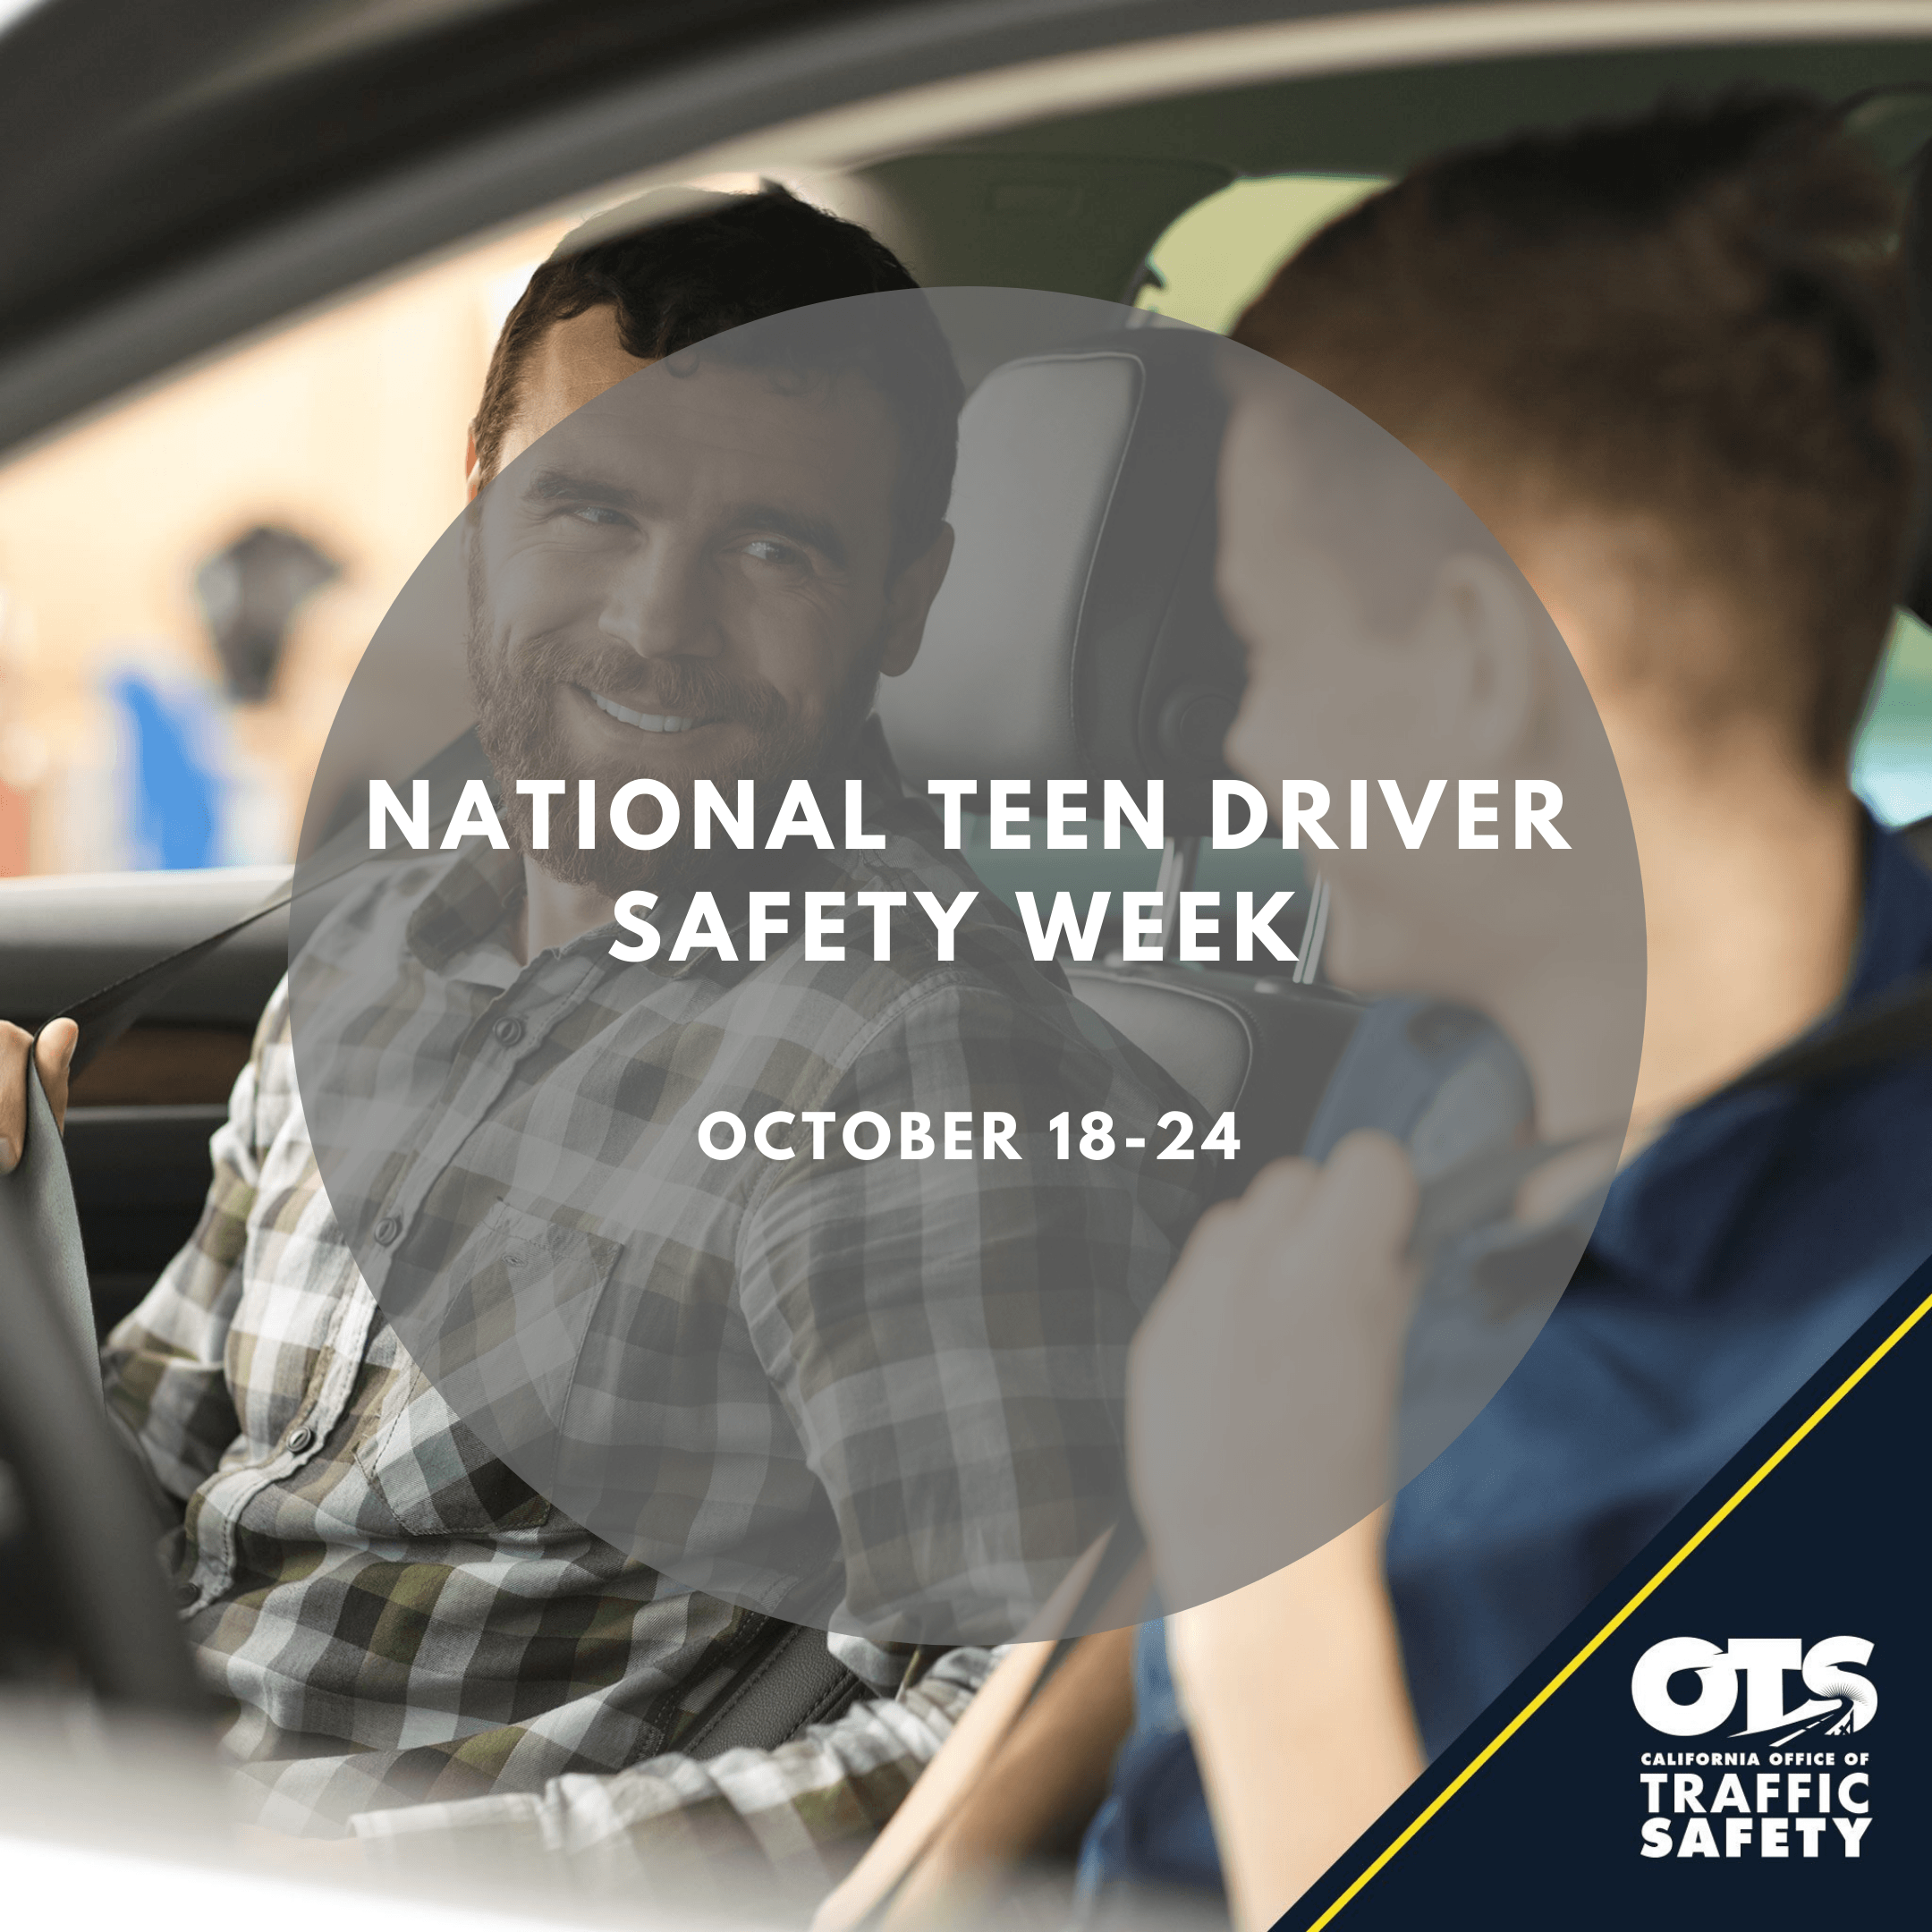 National Teen Safety Driver Week